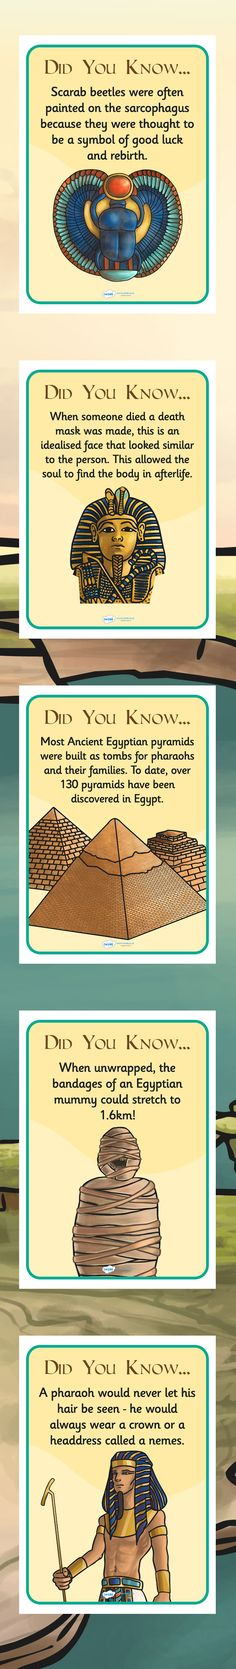 KS2 Ancient Egypt- Fun Facts Posters